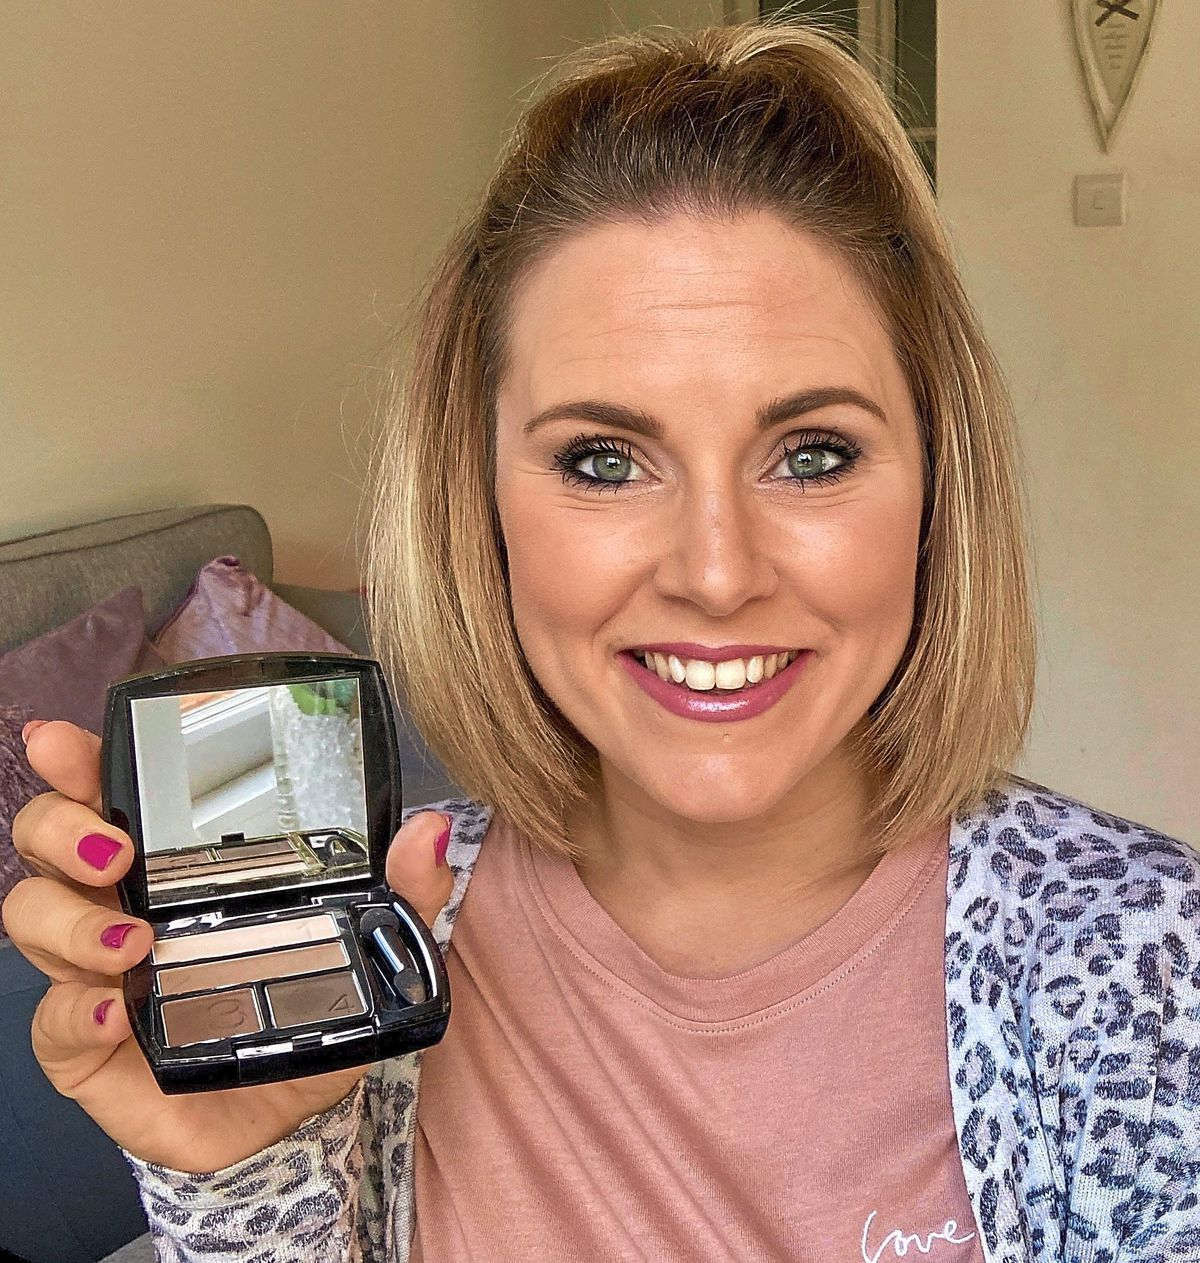 Natalie Nicholls who indulged in her passion for beauty by becoming an Avon Representative